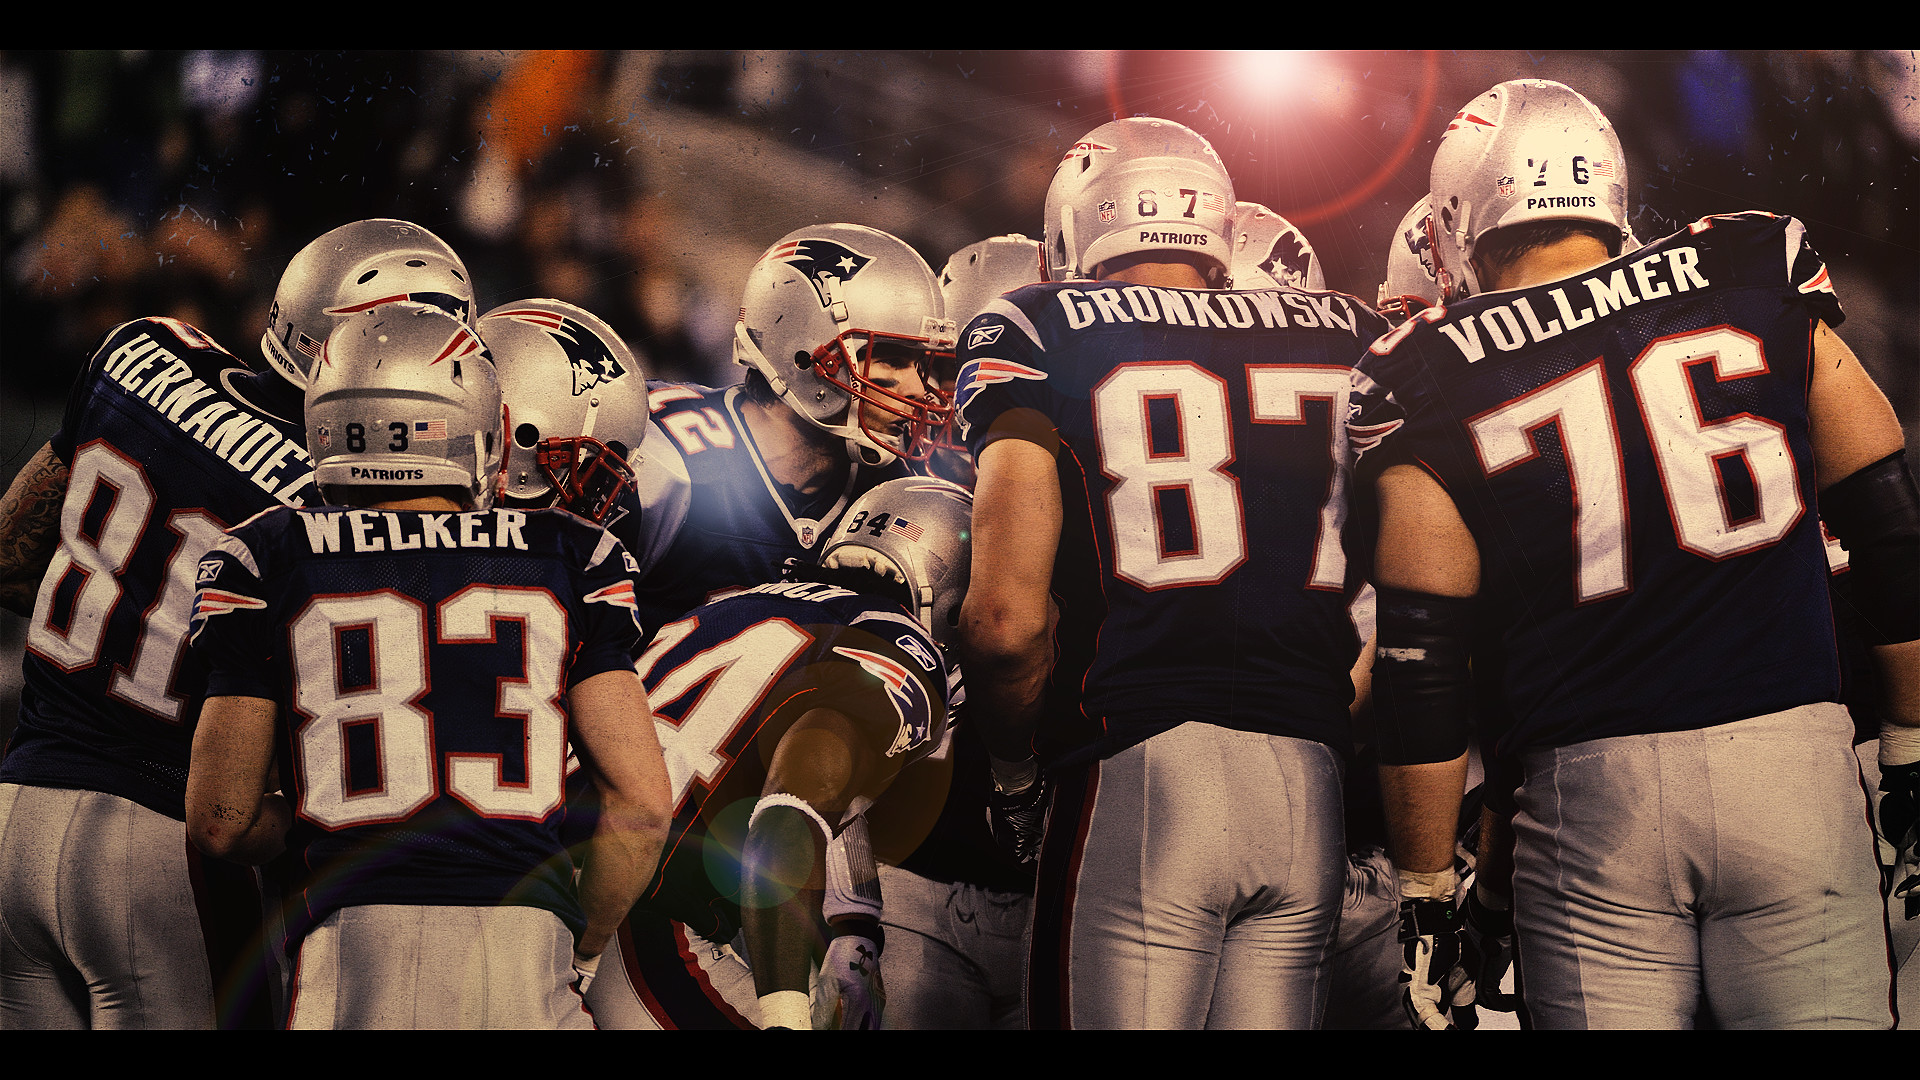 New England Patriots Wallpaper Large By Hottsauce13 - New England Patriots Wallpapers Hd - HD Wallpaper